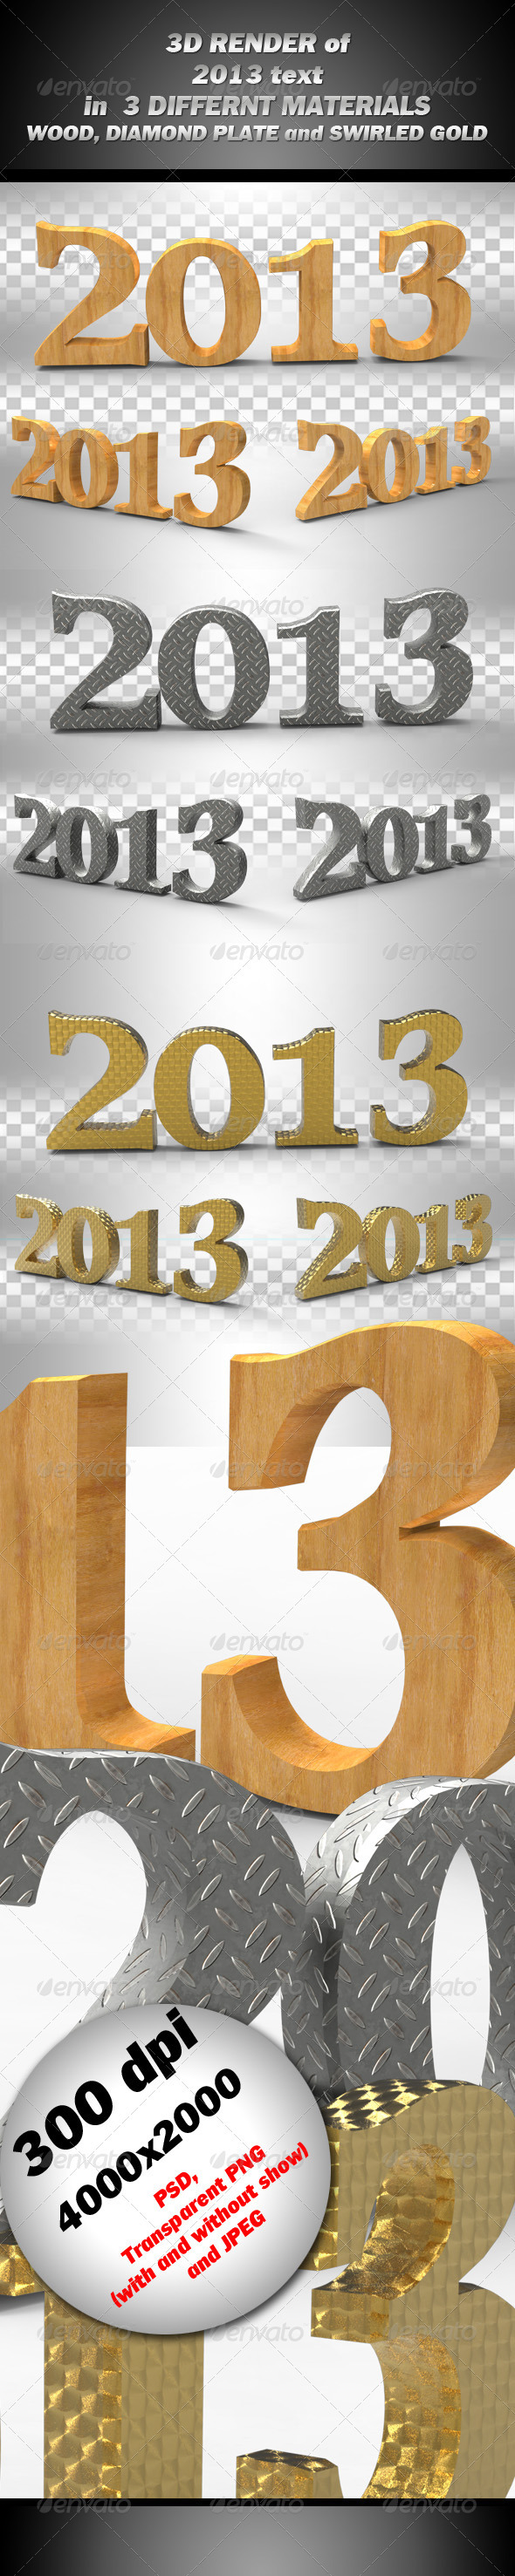 2013 3d render in 3 materials - 3D Backgrounds